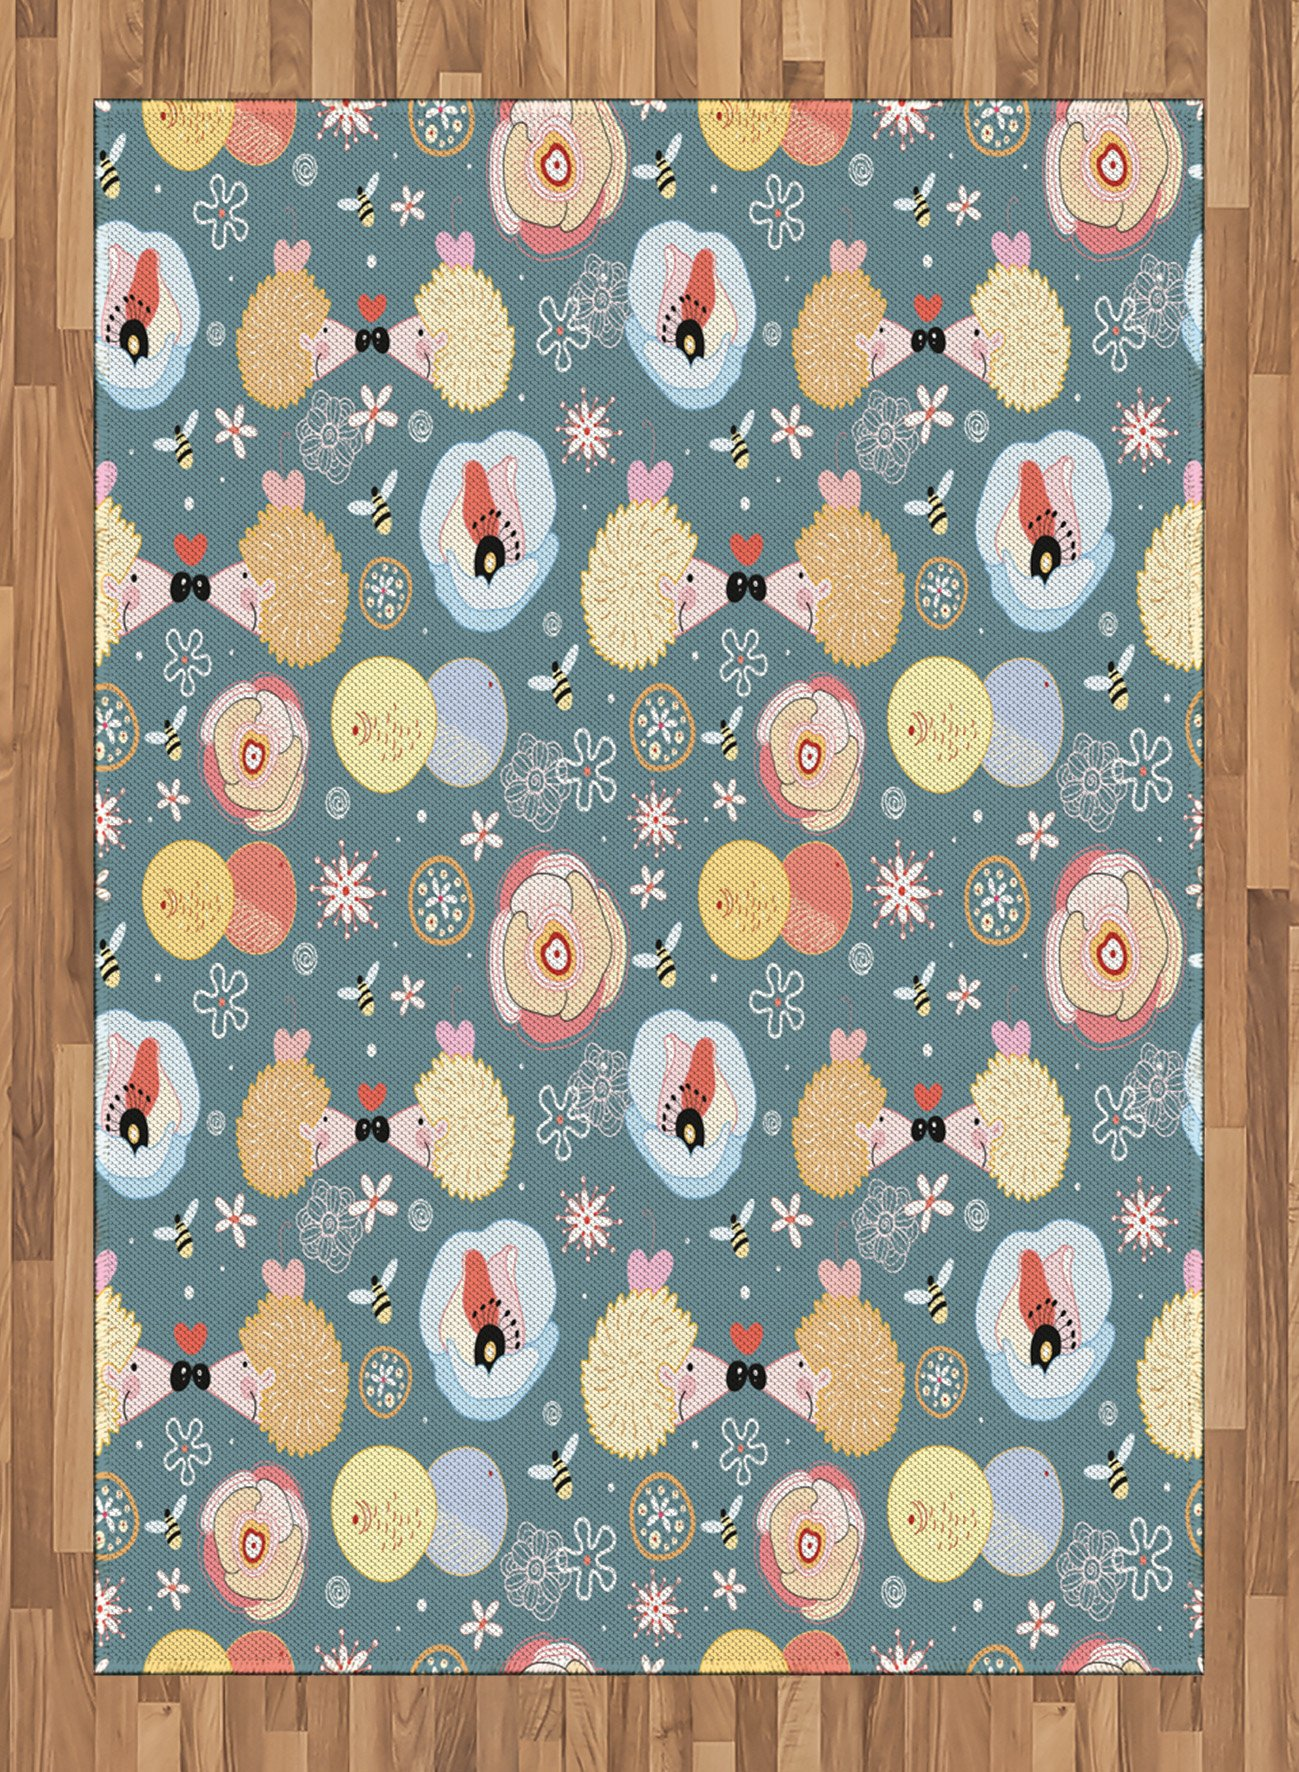 Kids Area Rug by Lunarable, Cute Hedgehogs Kissing Hearts Love Bees Flowers Cheerful Happy Baby Artwork Image, Flat Woven Accent Rug for Living Room Bedroom Dining Room, 5.2 x 7.5 FT, Multicolor by Lunarable (Image #1)